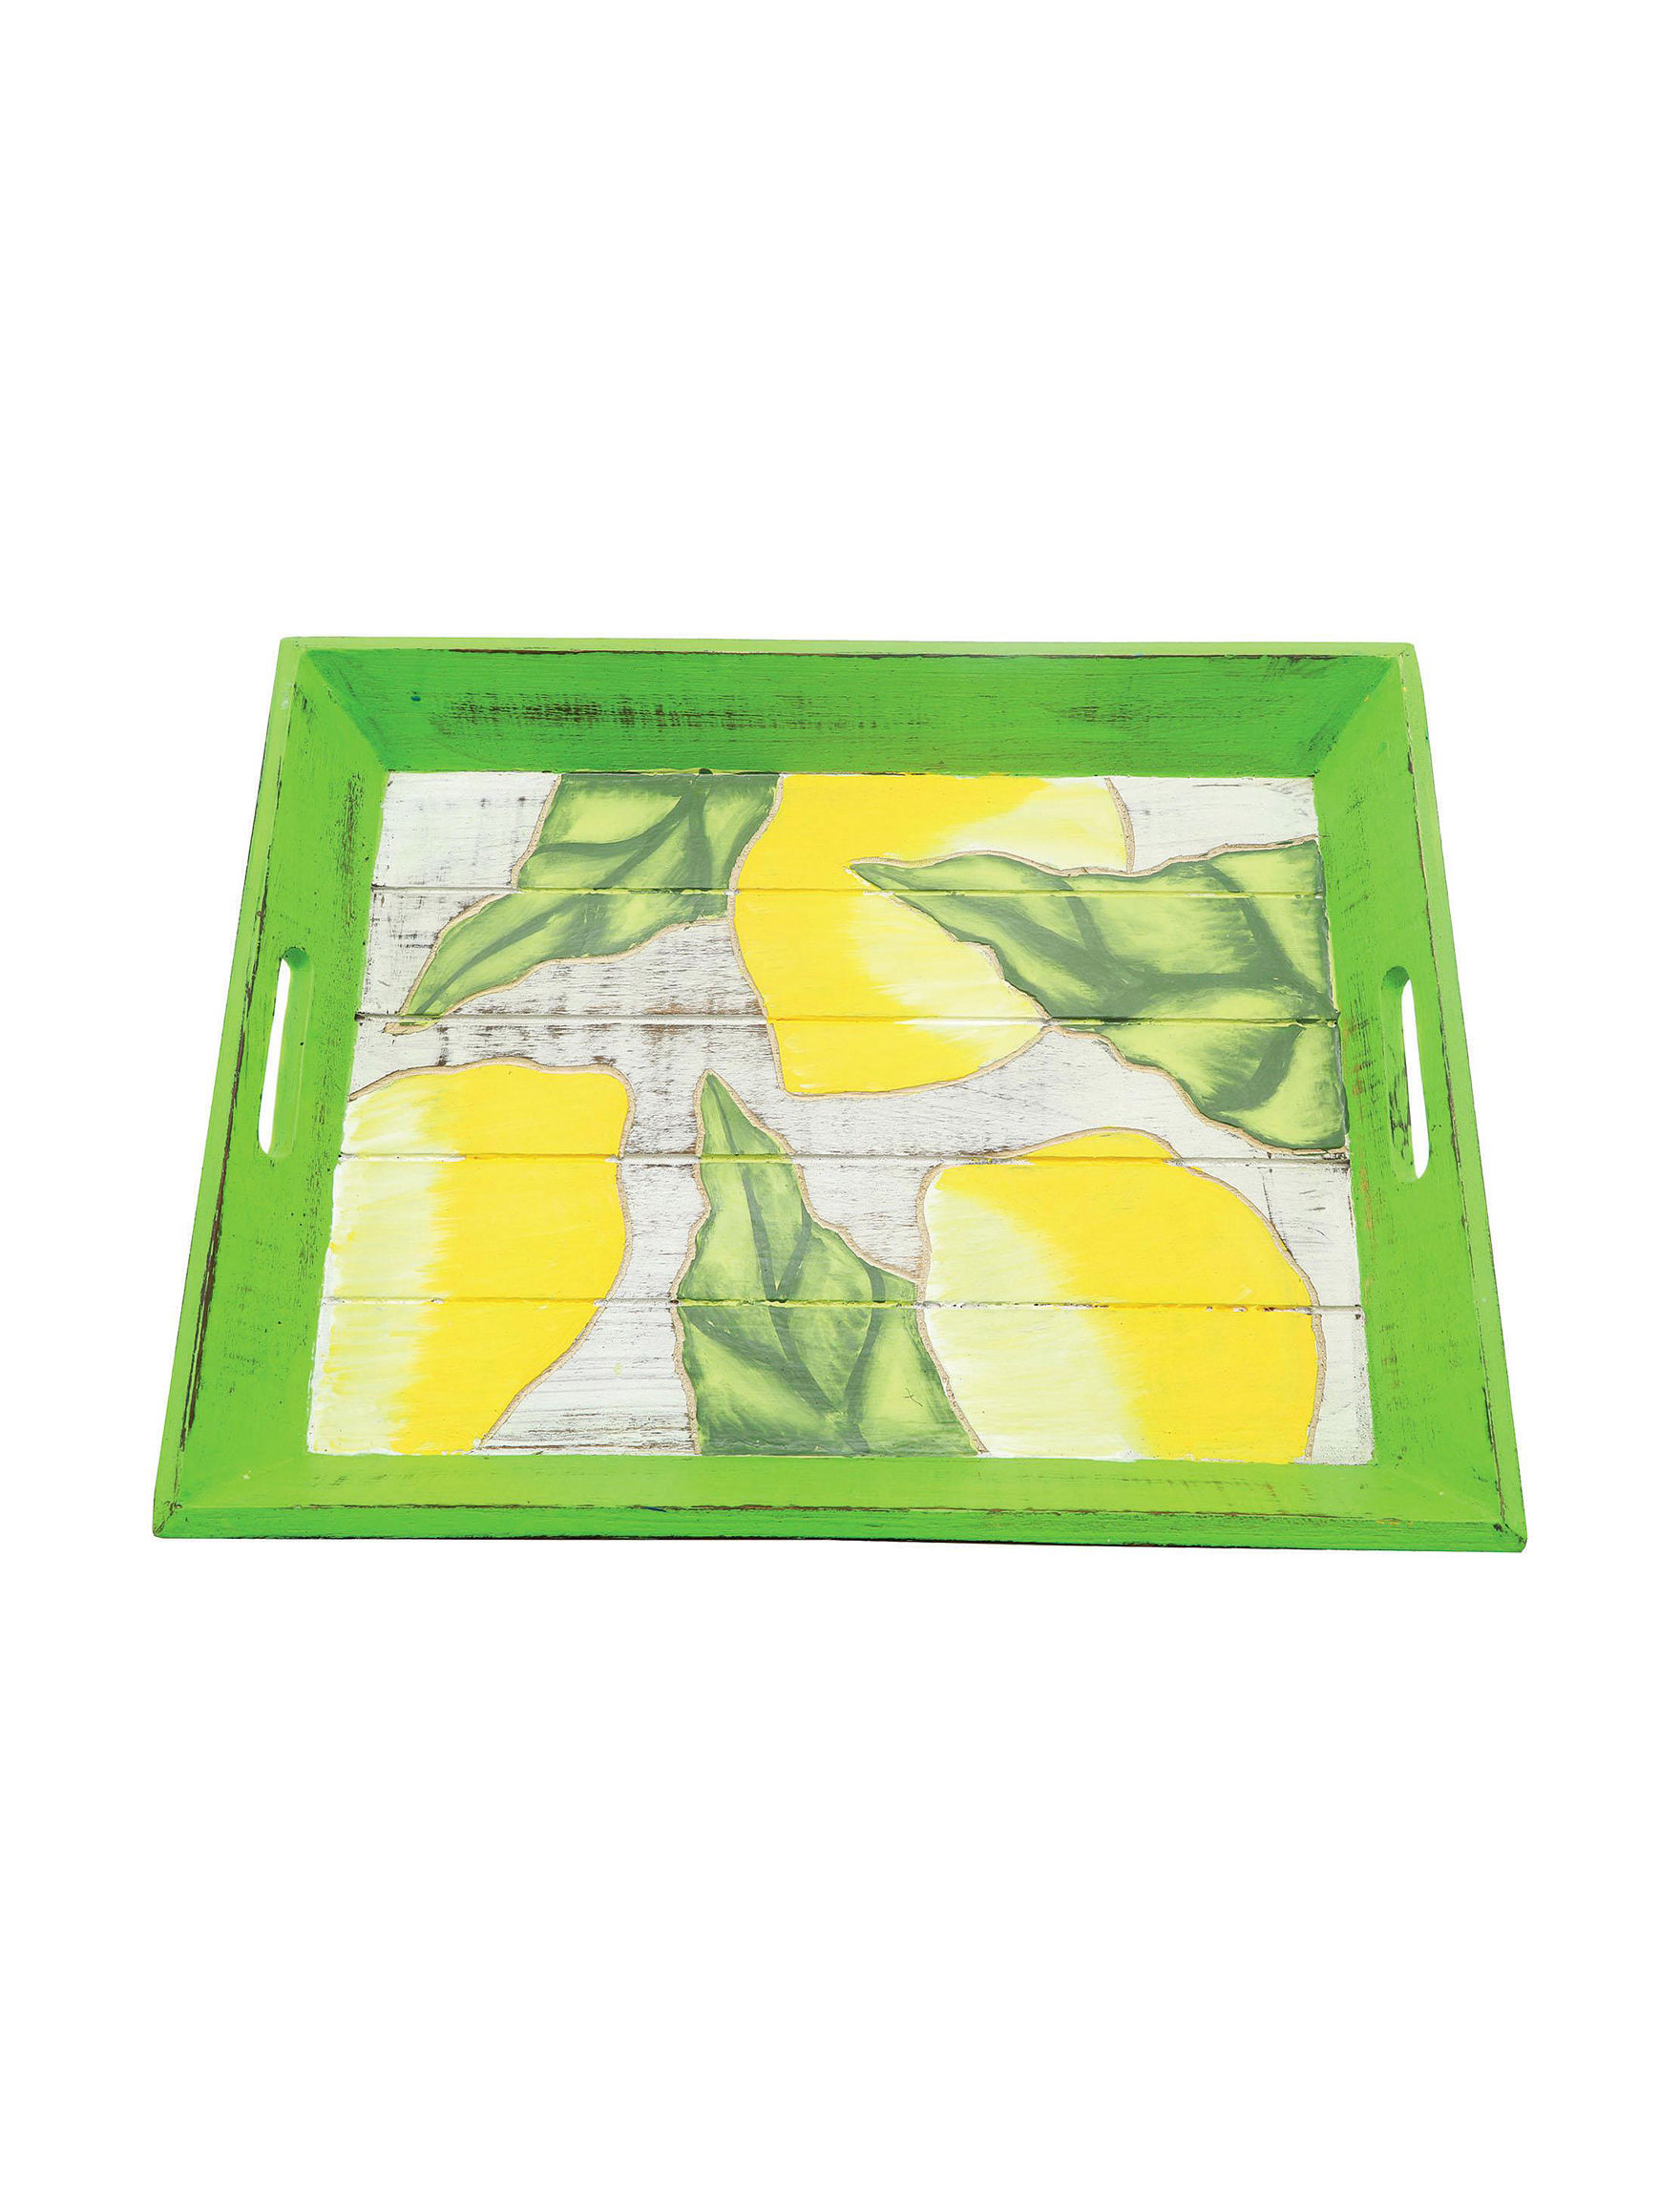 Dennis East Green / White Decorative Trays Home Accents